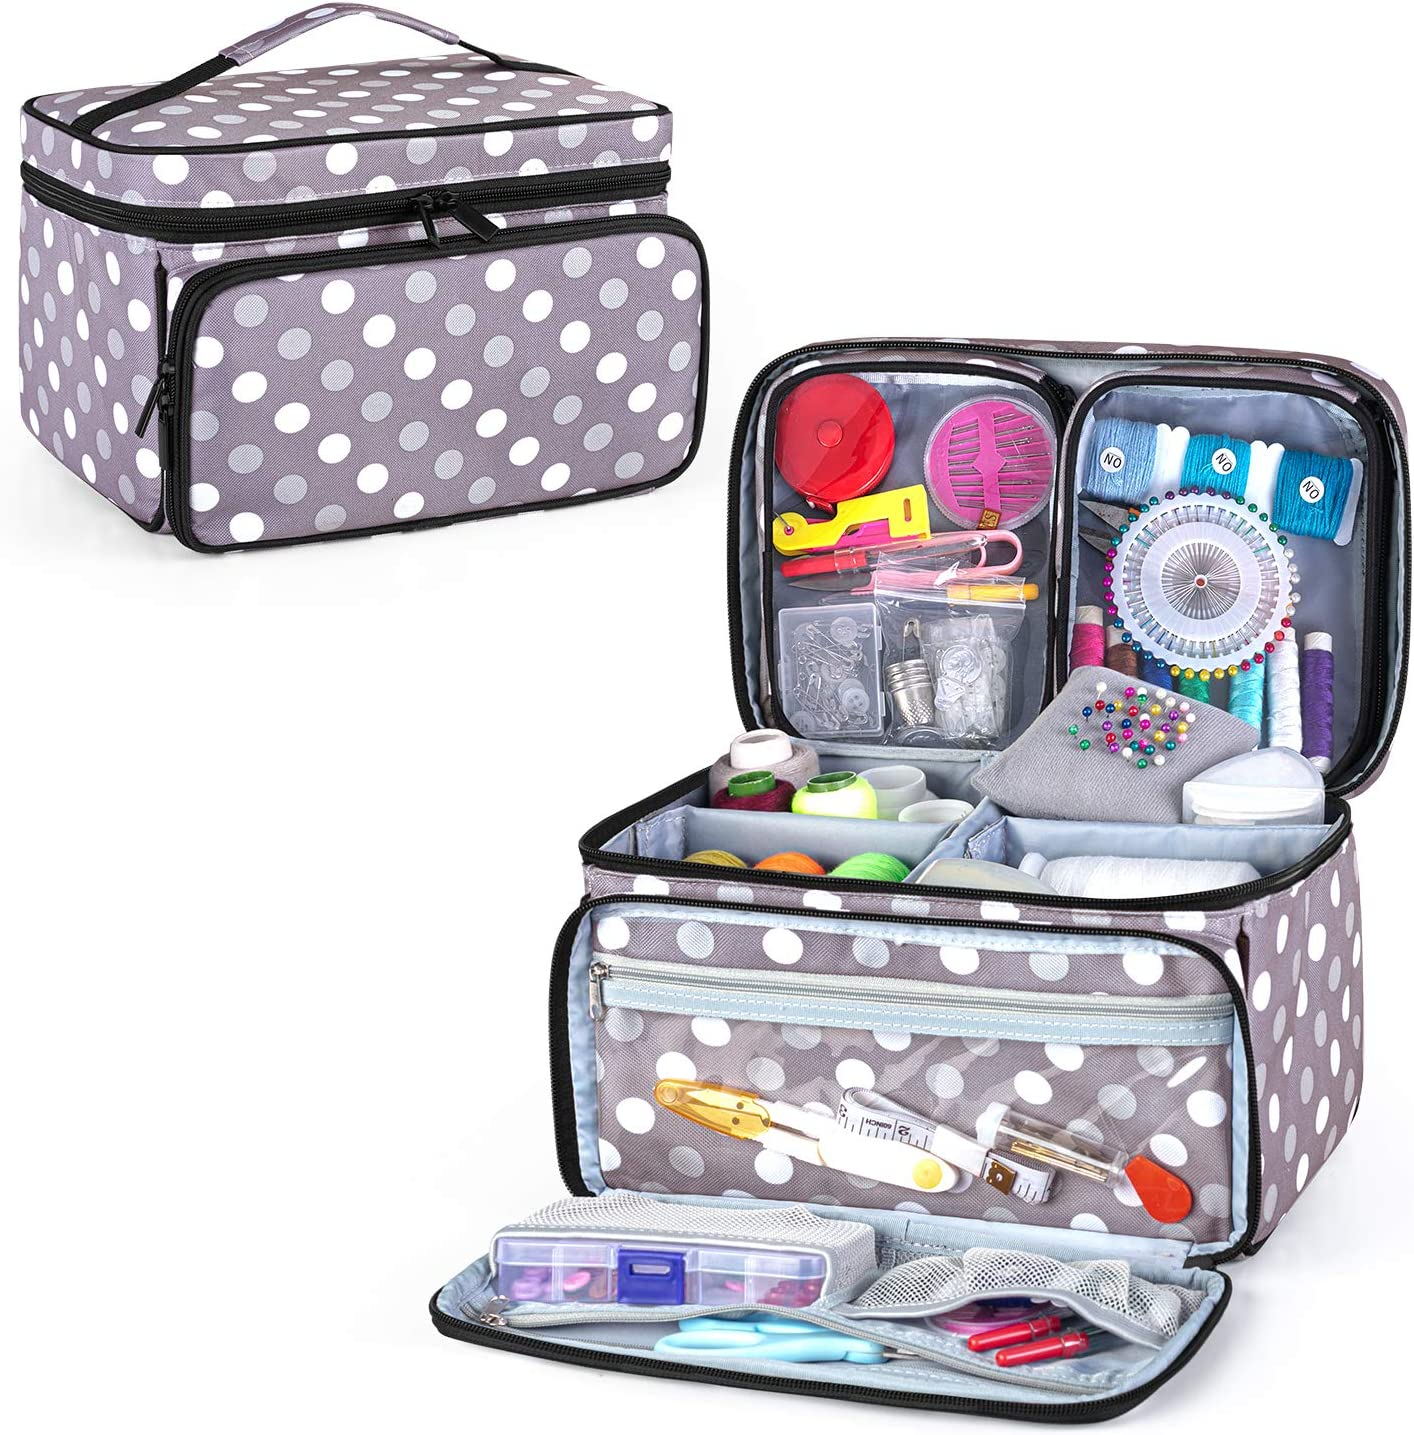 Gray Luxja Sewing Machine Carrying Bag with Sewing Accessories Organizer